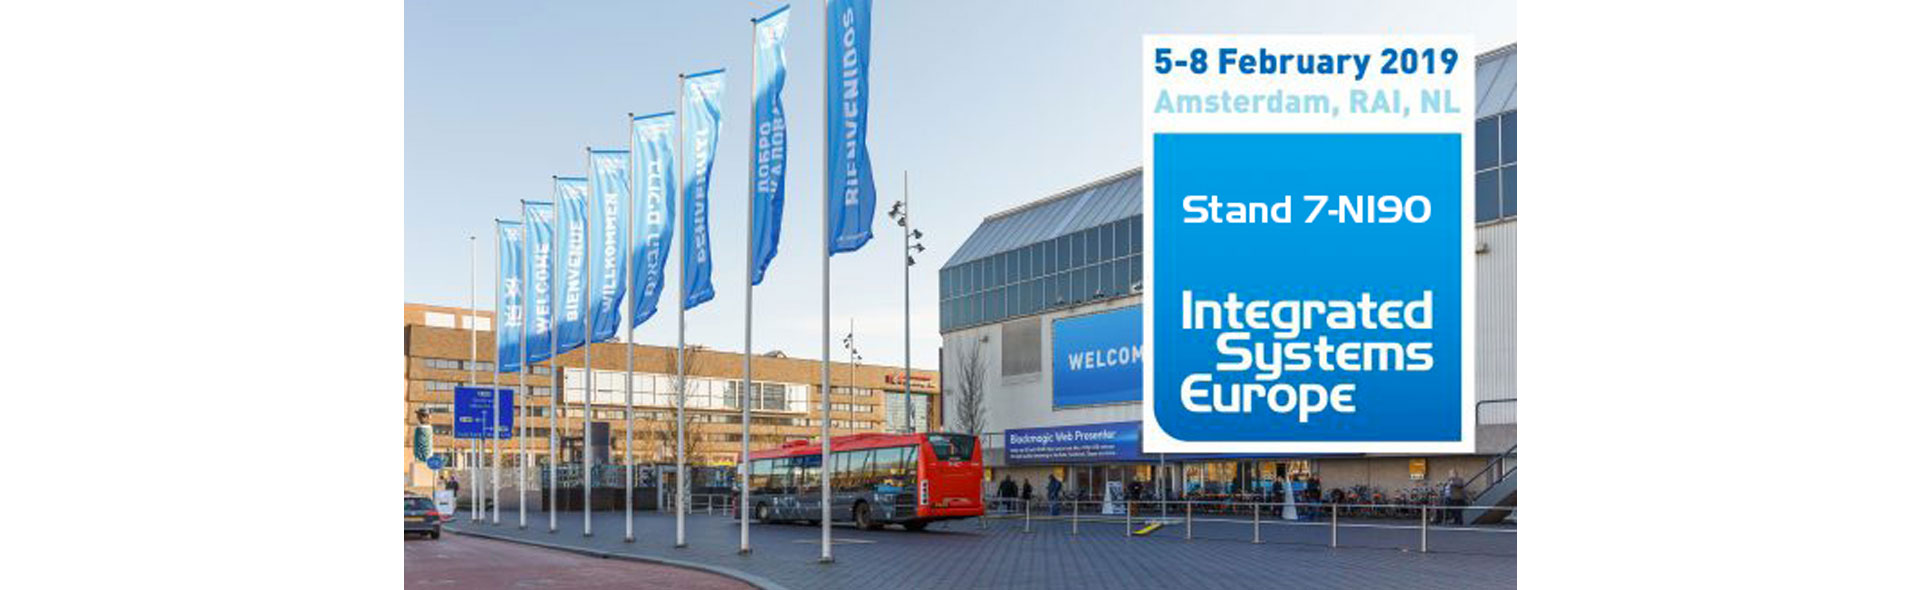 First exhibition for APG at ISE – Amsterdam